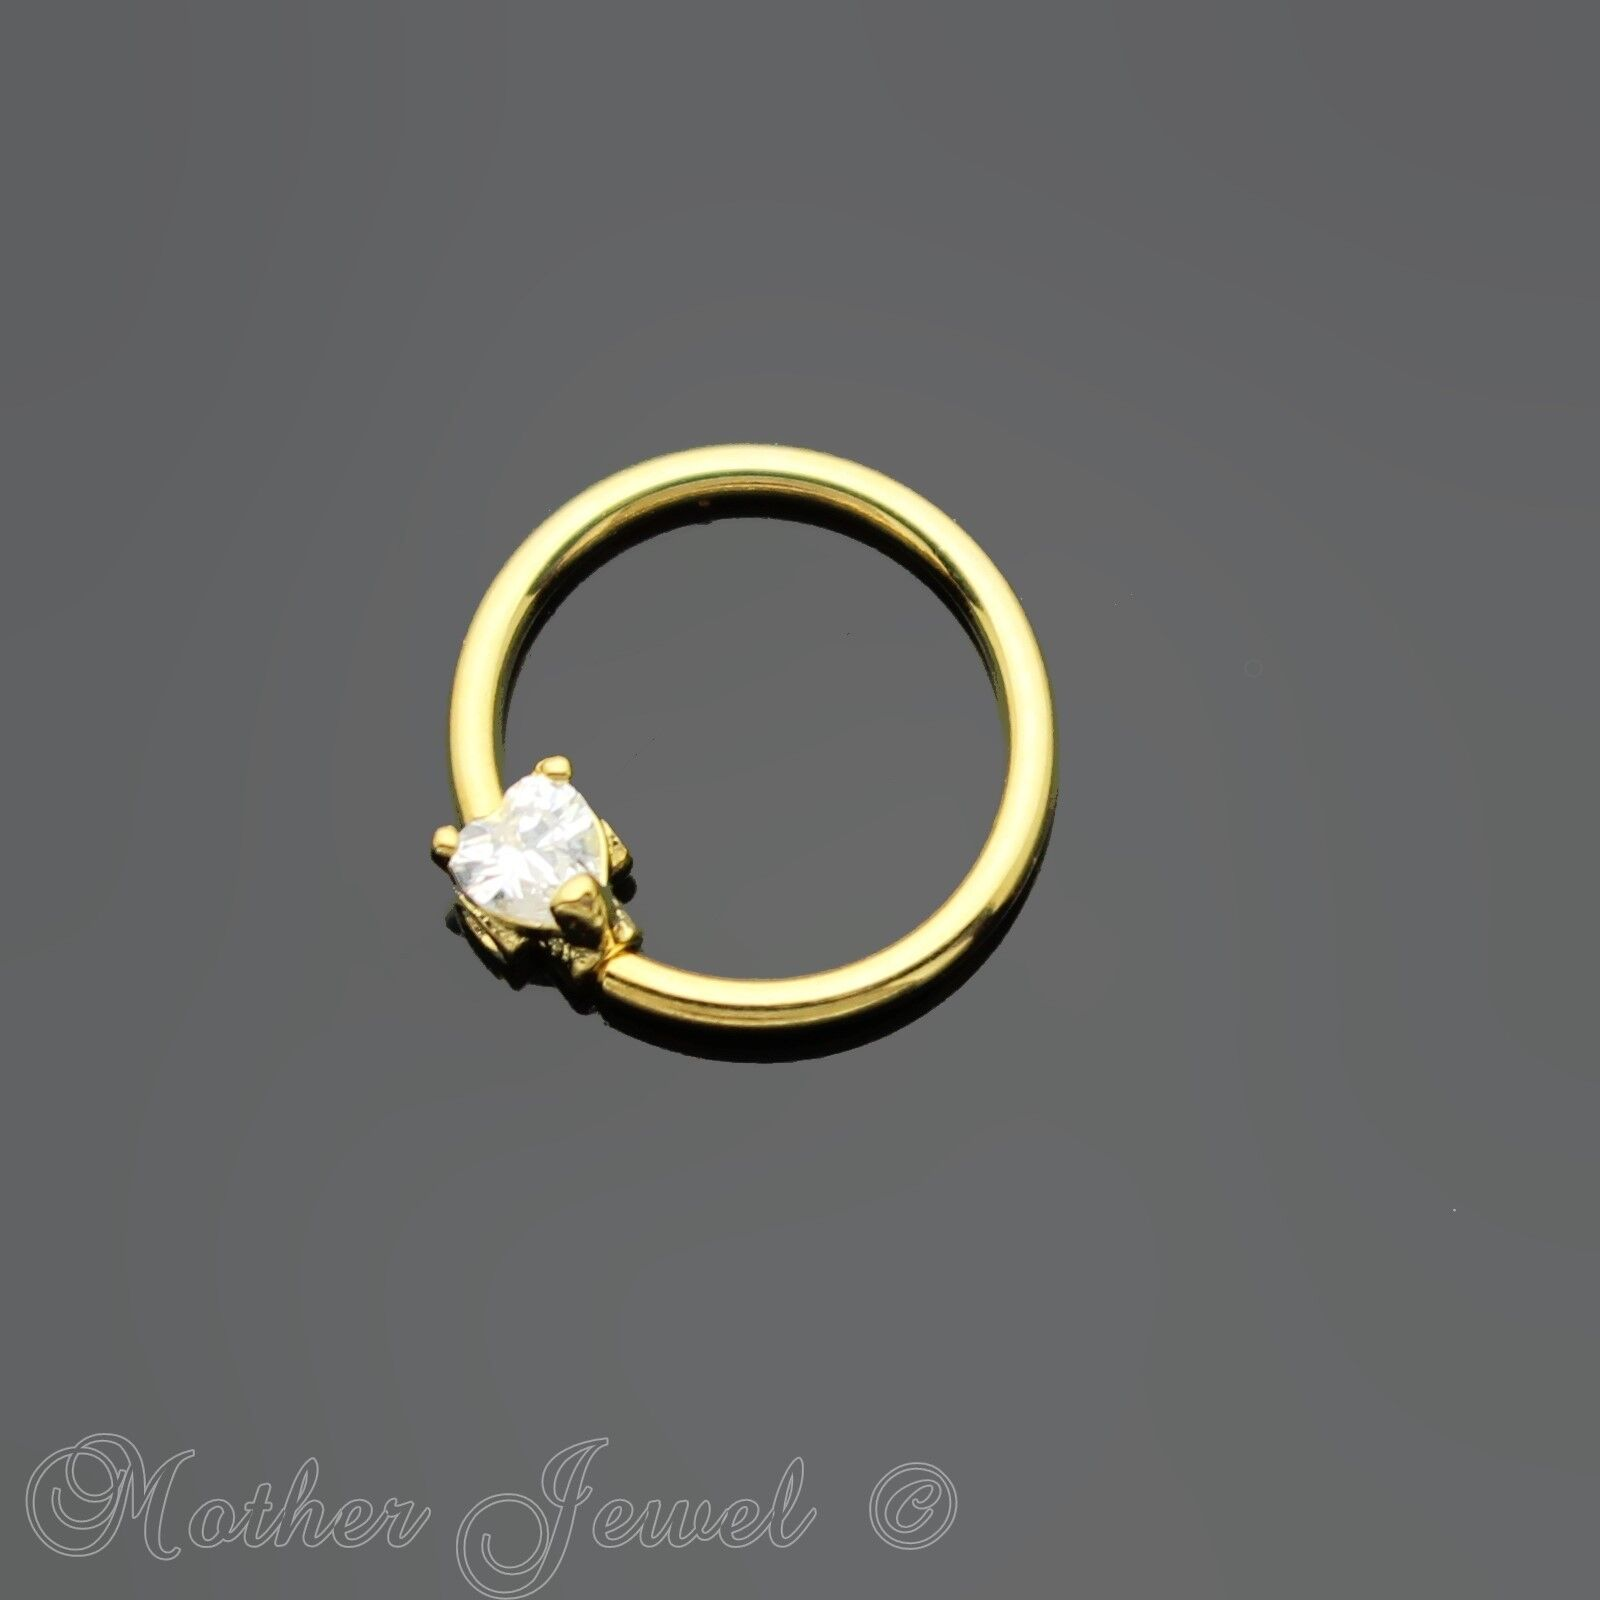 16G 14K YELLOW GOLD IP 5 SIMULATED DIAMONDS ANNEALED BENDABLE HOOP EAR NOSE RING